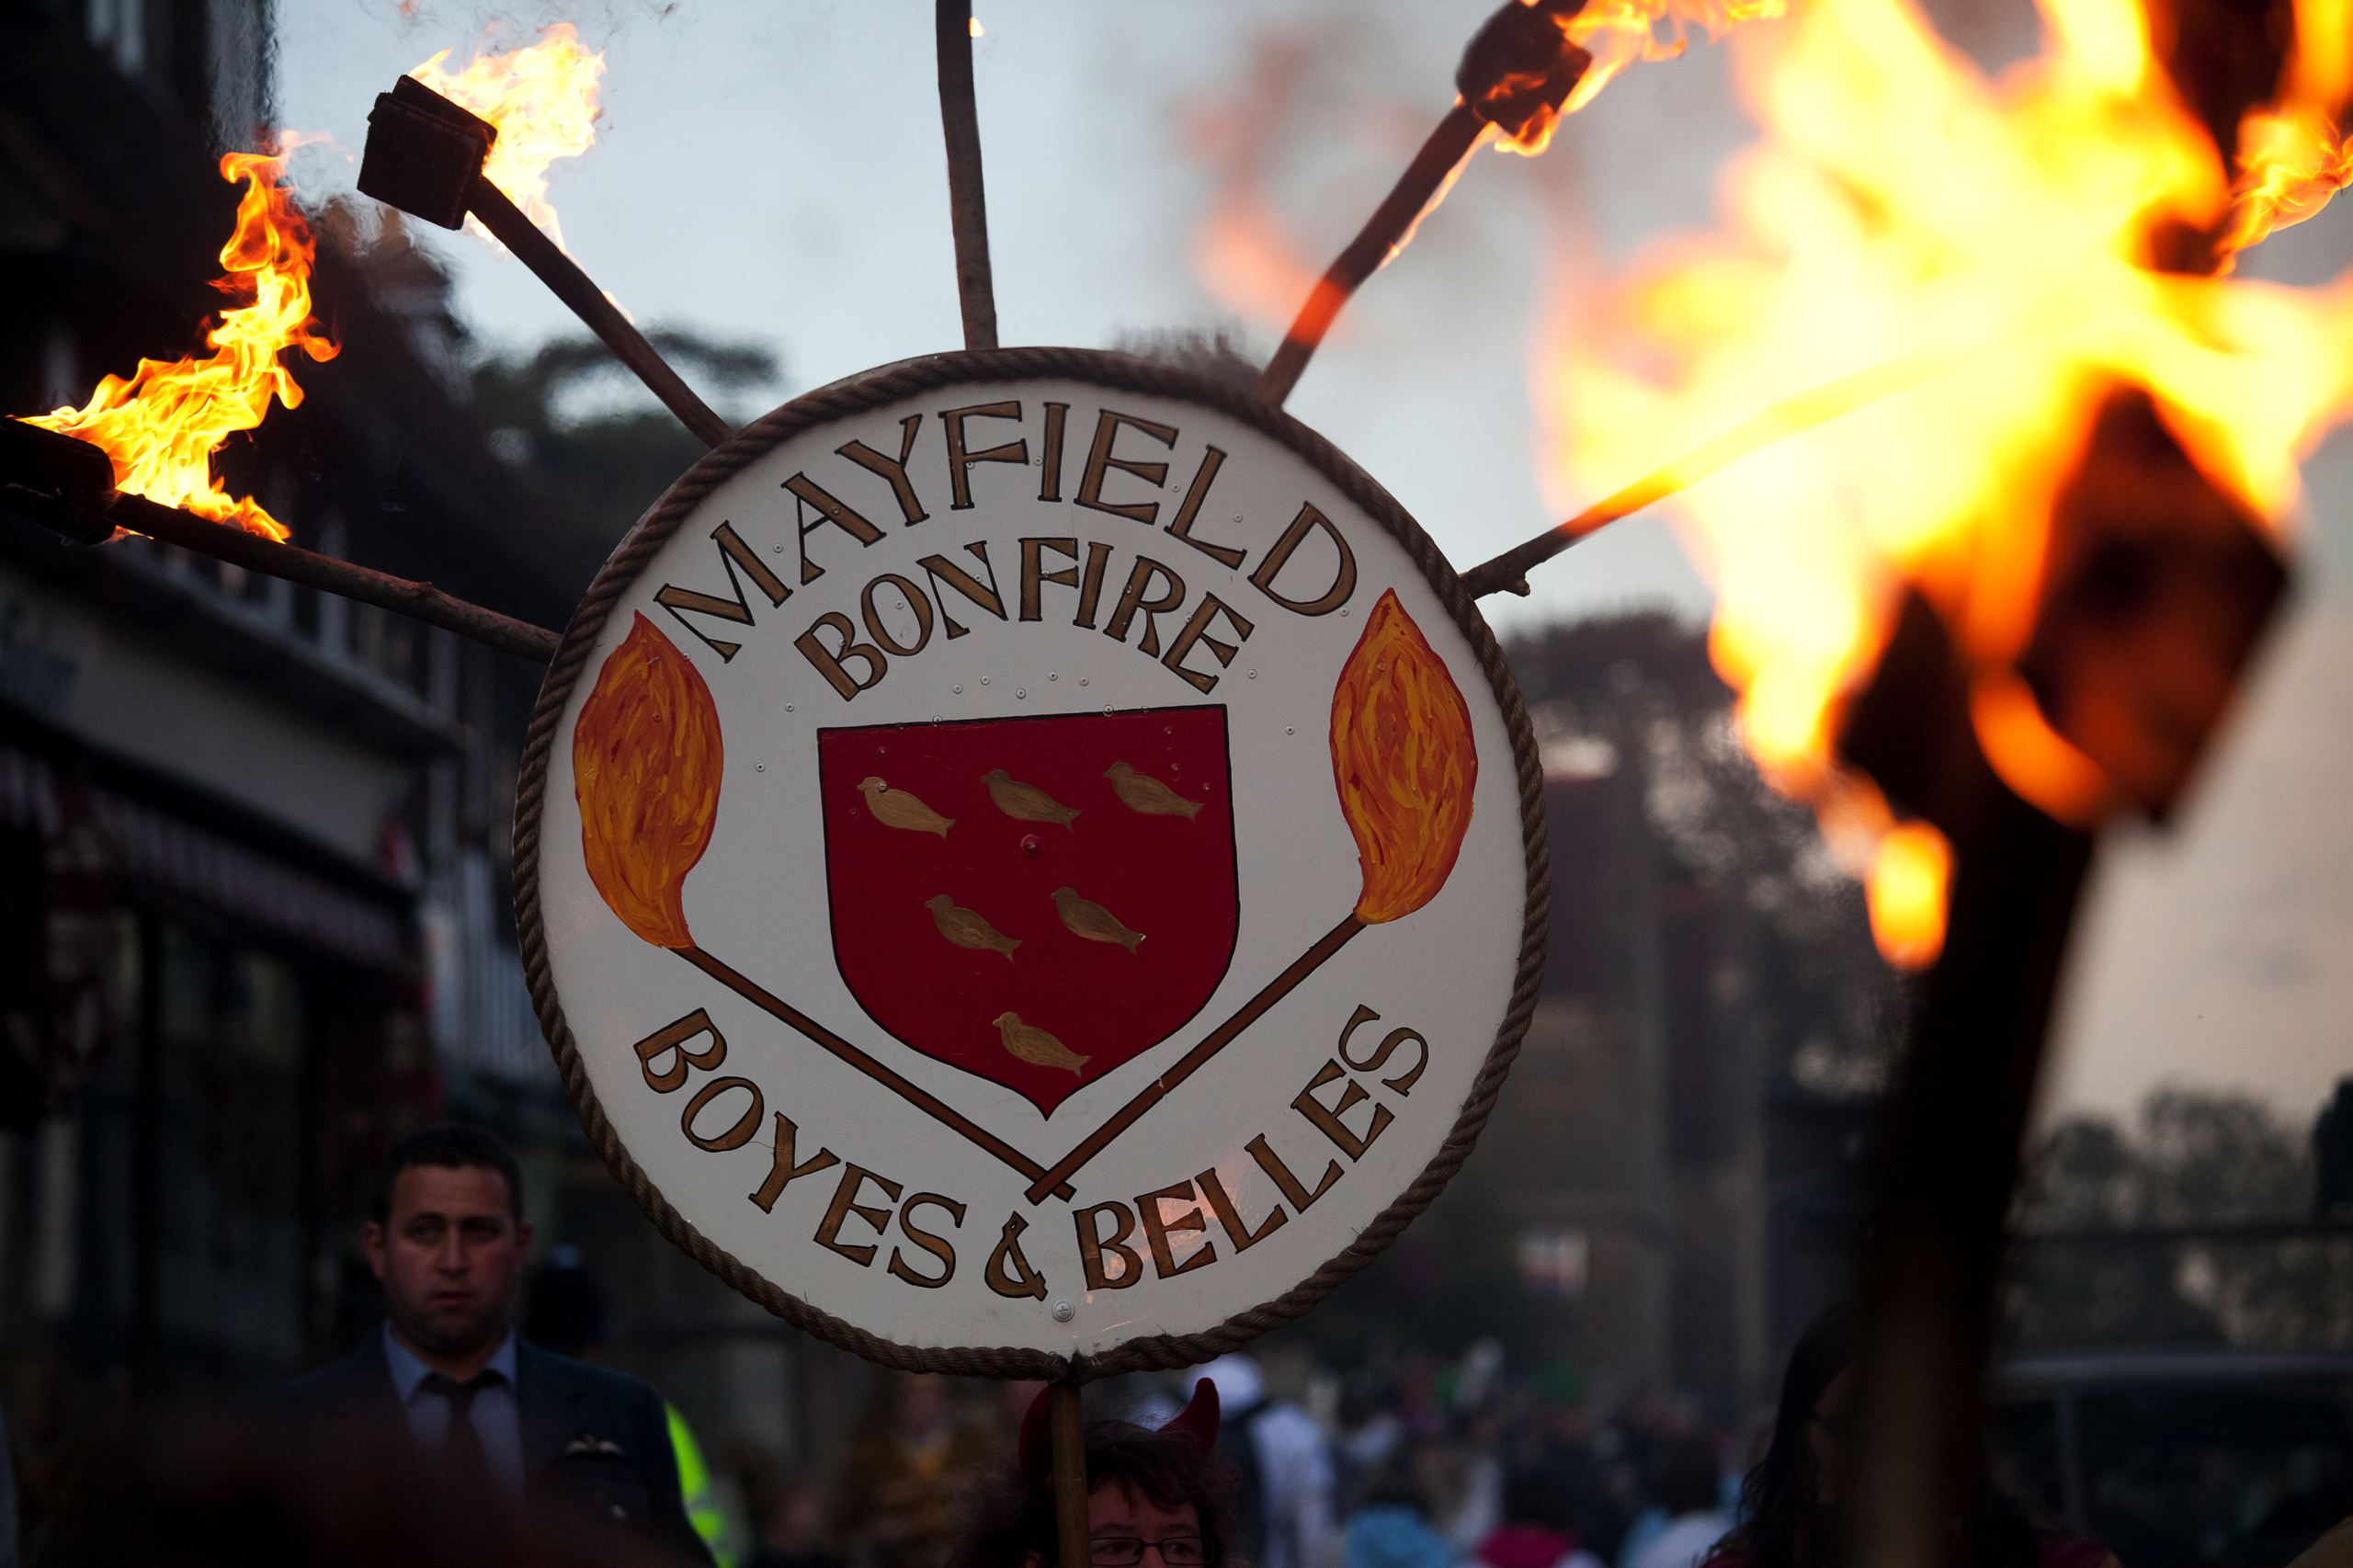 Mayfield Bonfire 20111